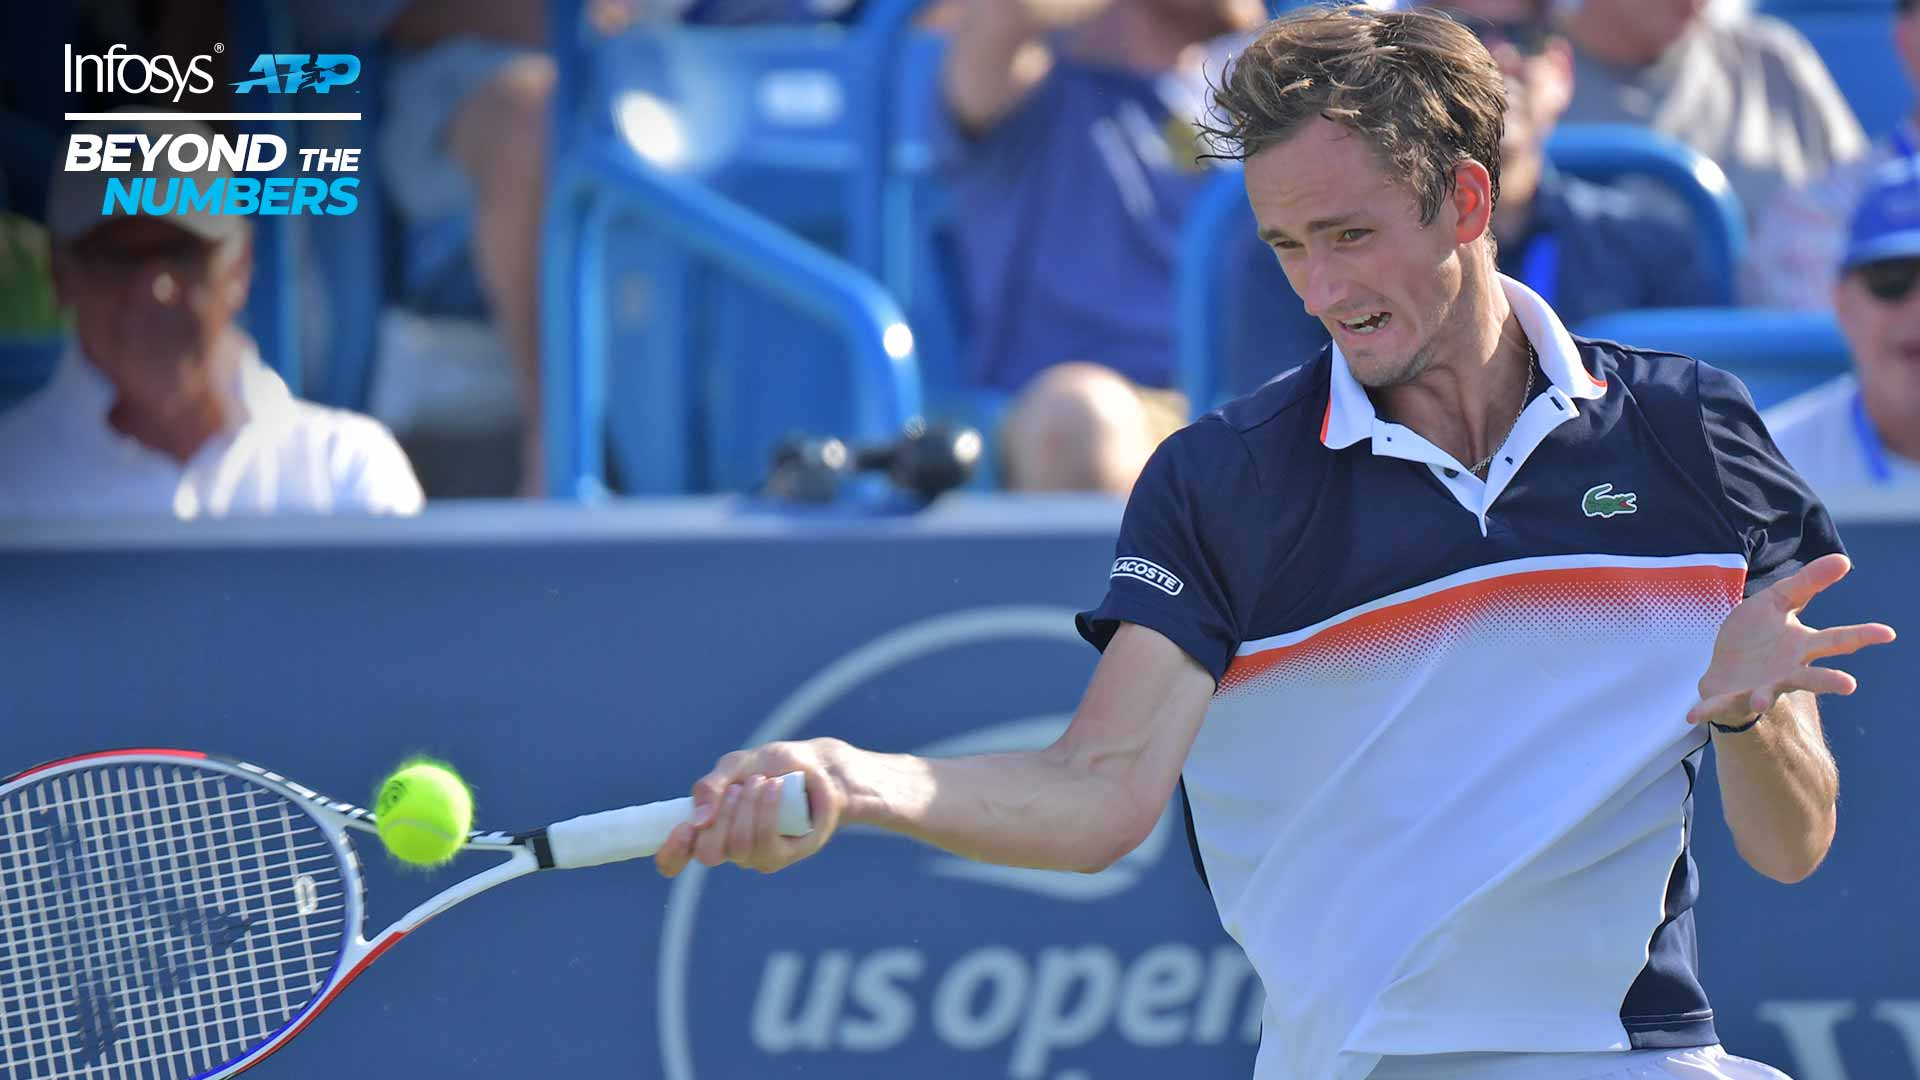 Daniil Medvedev plays at the Western & Southern Open in Cincinnati